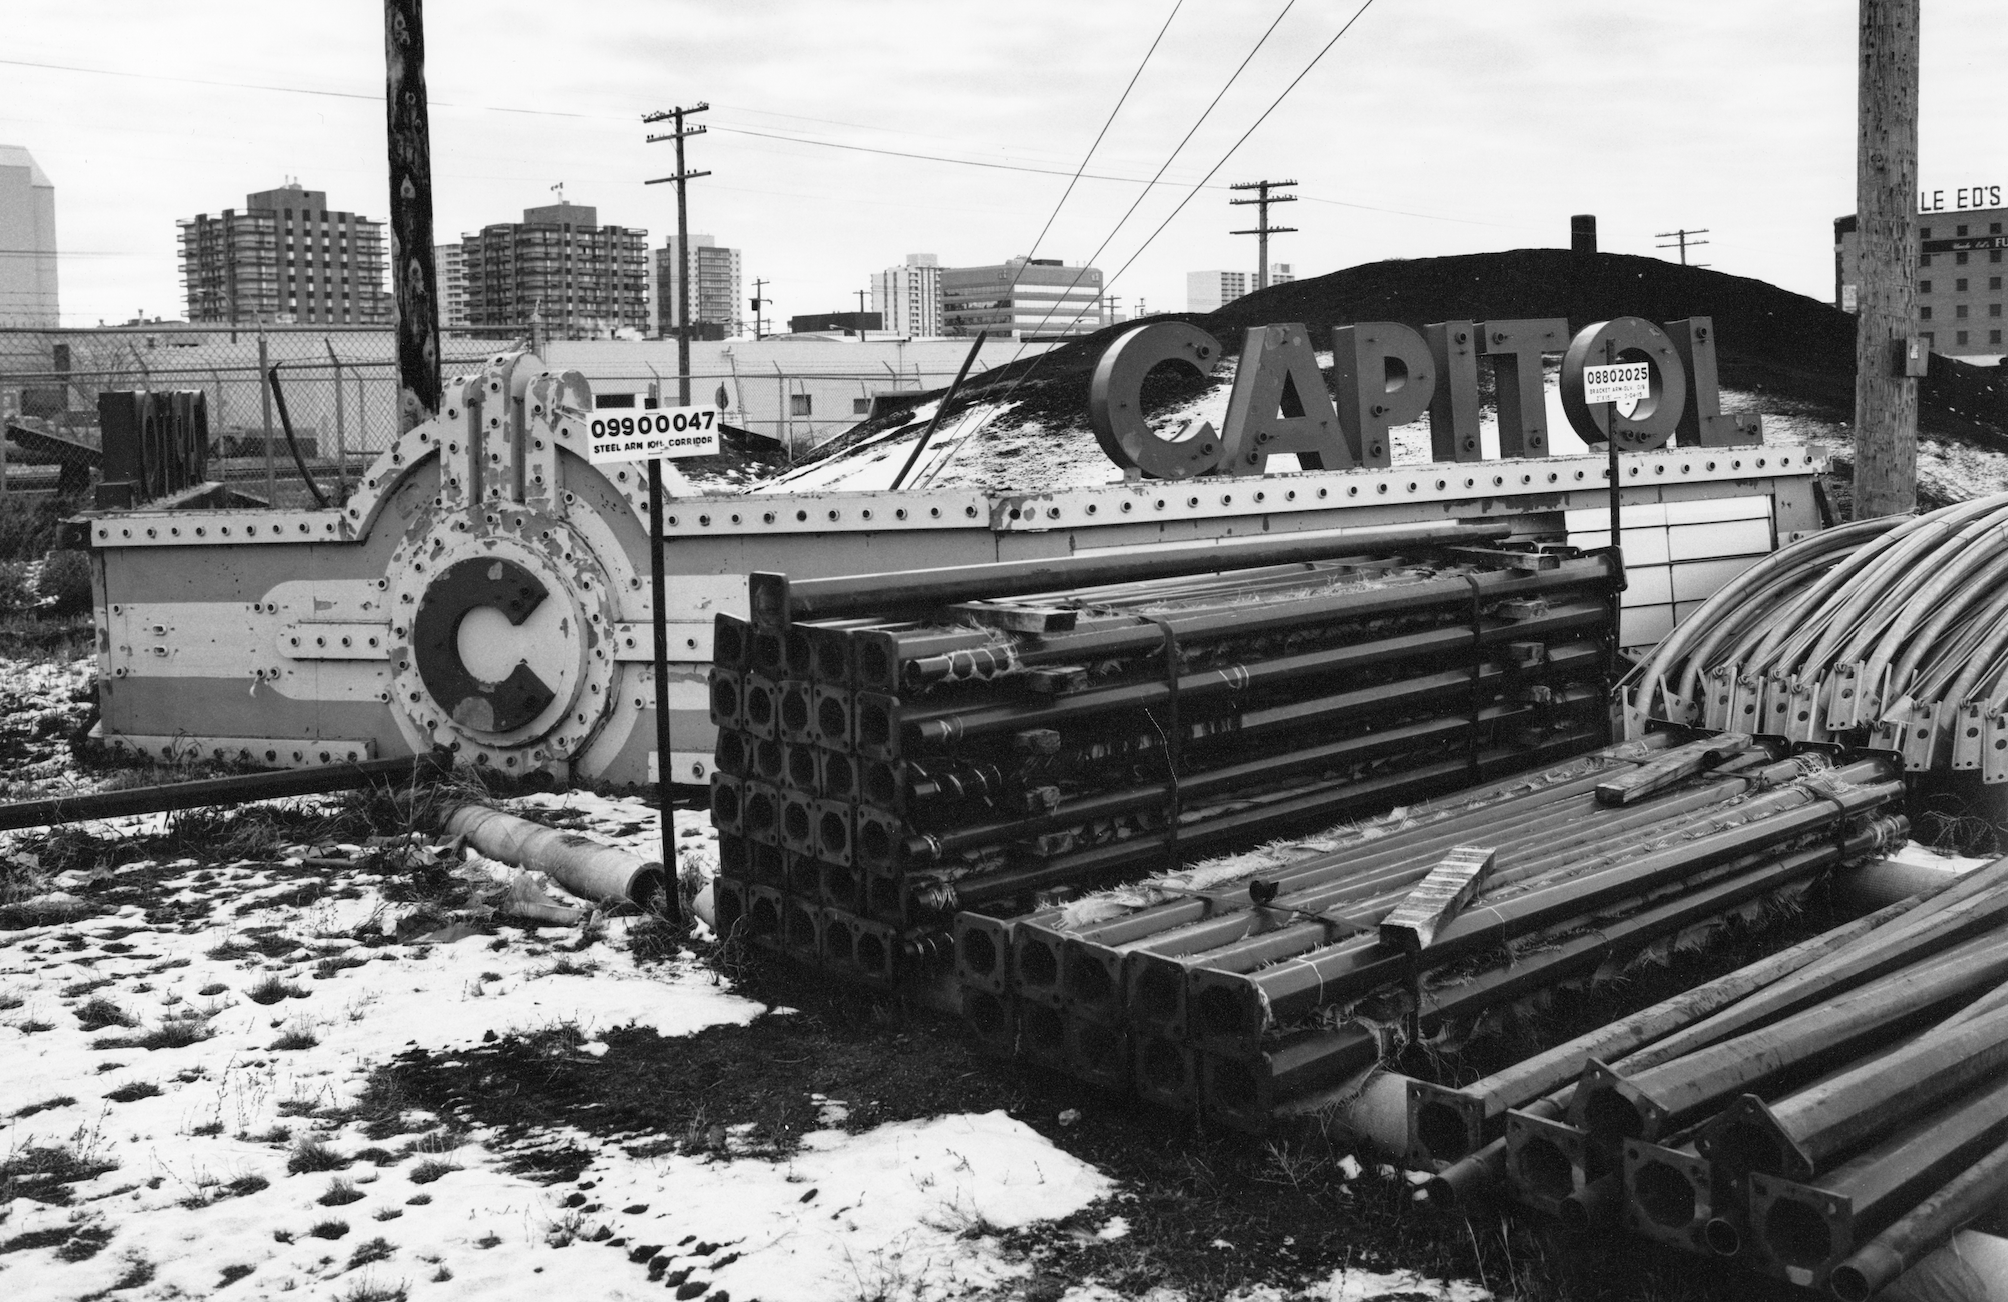 The Capitol marquee was wrestled off the Second Avenue facade and deposited in a city yard in 1979. (Saskatoon Public Library Local History Room; item PH-89-30-42)